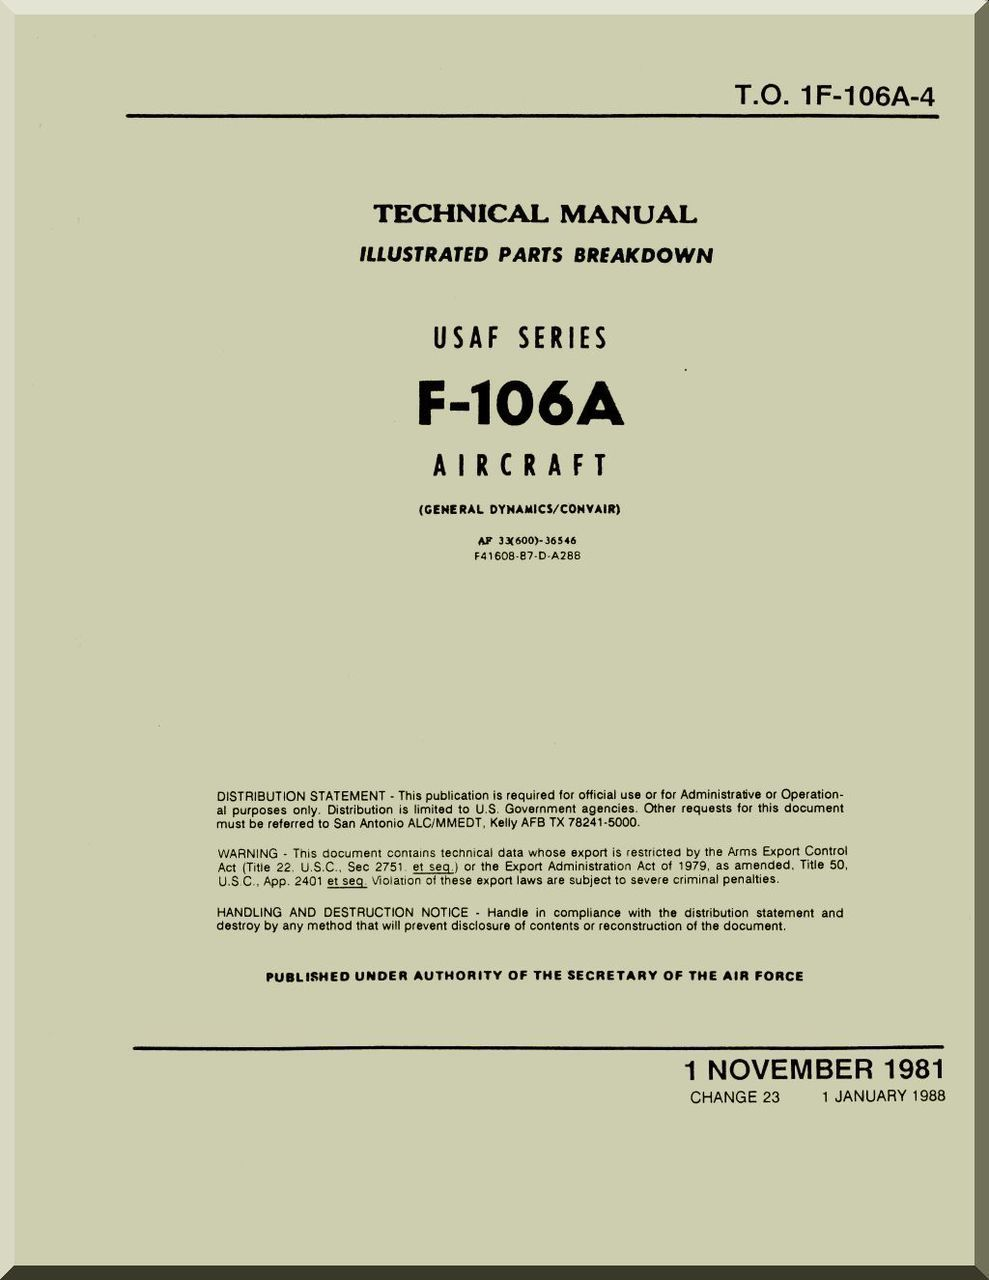 Convair F 106 A Aircraft Illustrated Parts Breakdown Manual To Helicopter Diagram 1f 106a 4 1981 2613 Pages Reports Manuals